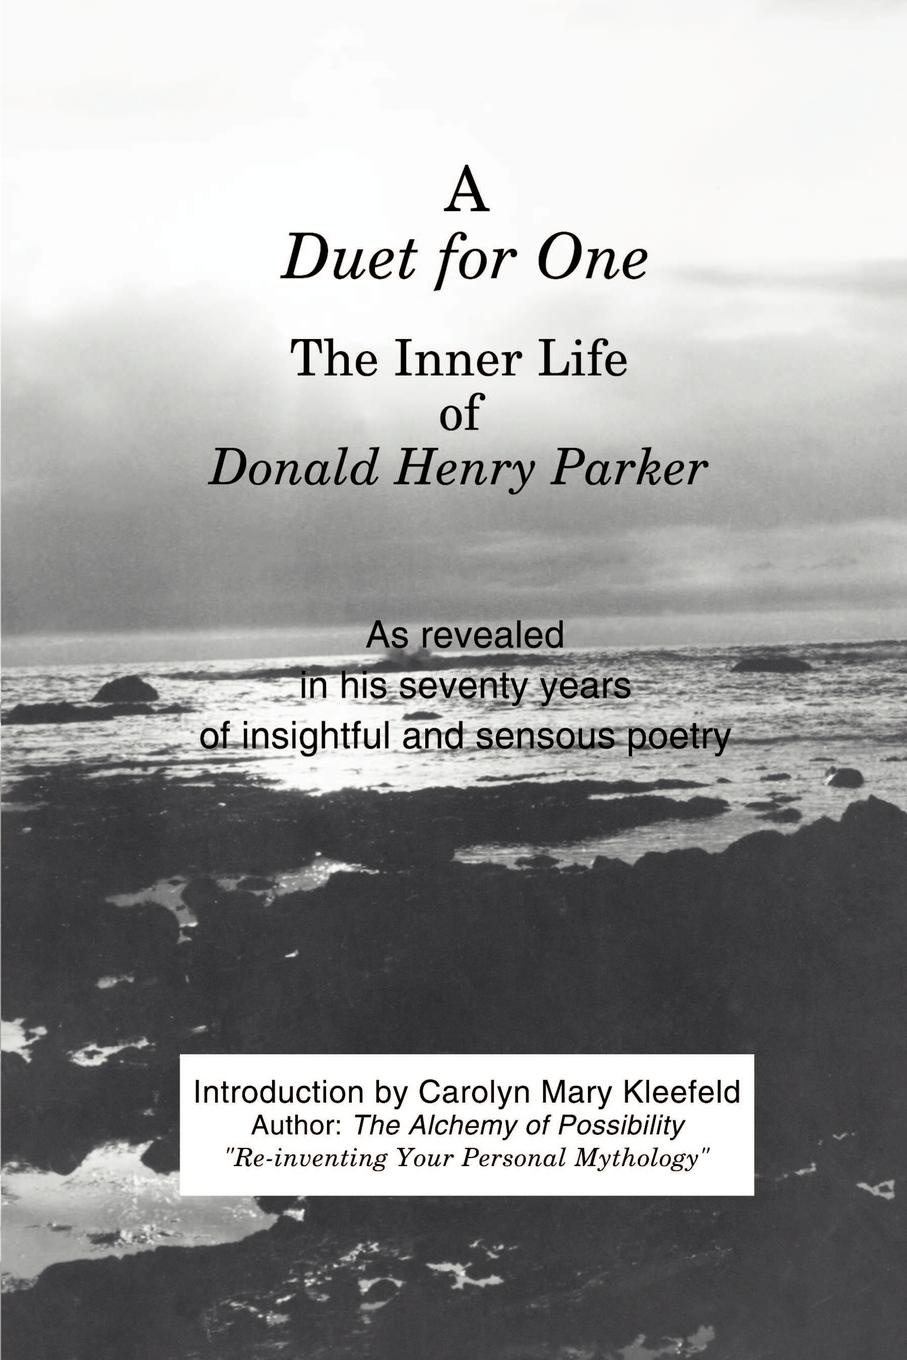 A Duet for One. The Inner Life of Donald Henry Parker as Revealed in His Seventy Years of Insightful and Sensuous Poetry. Donald Henry Parker